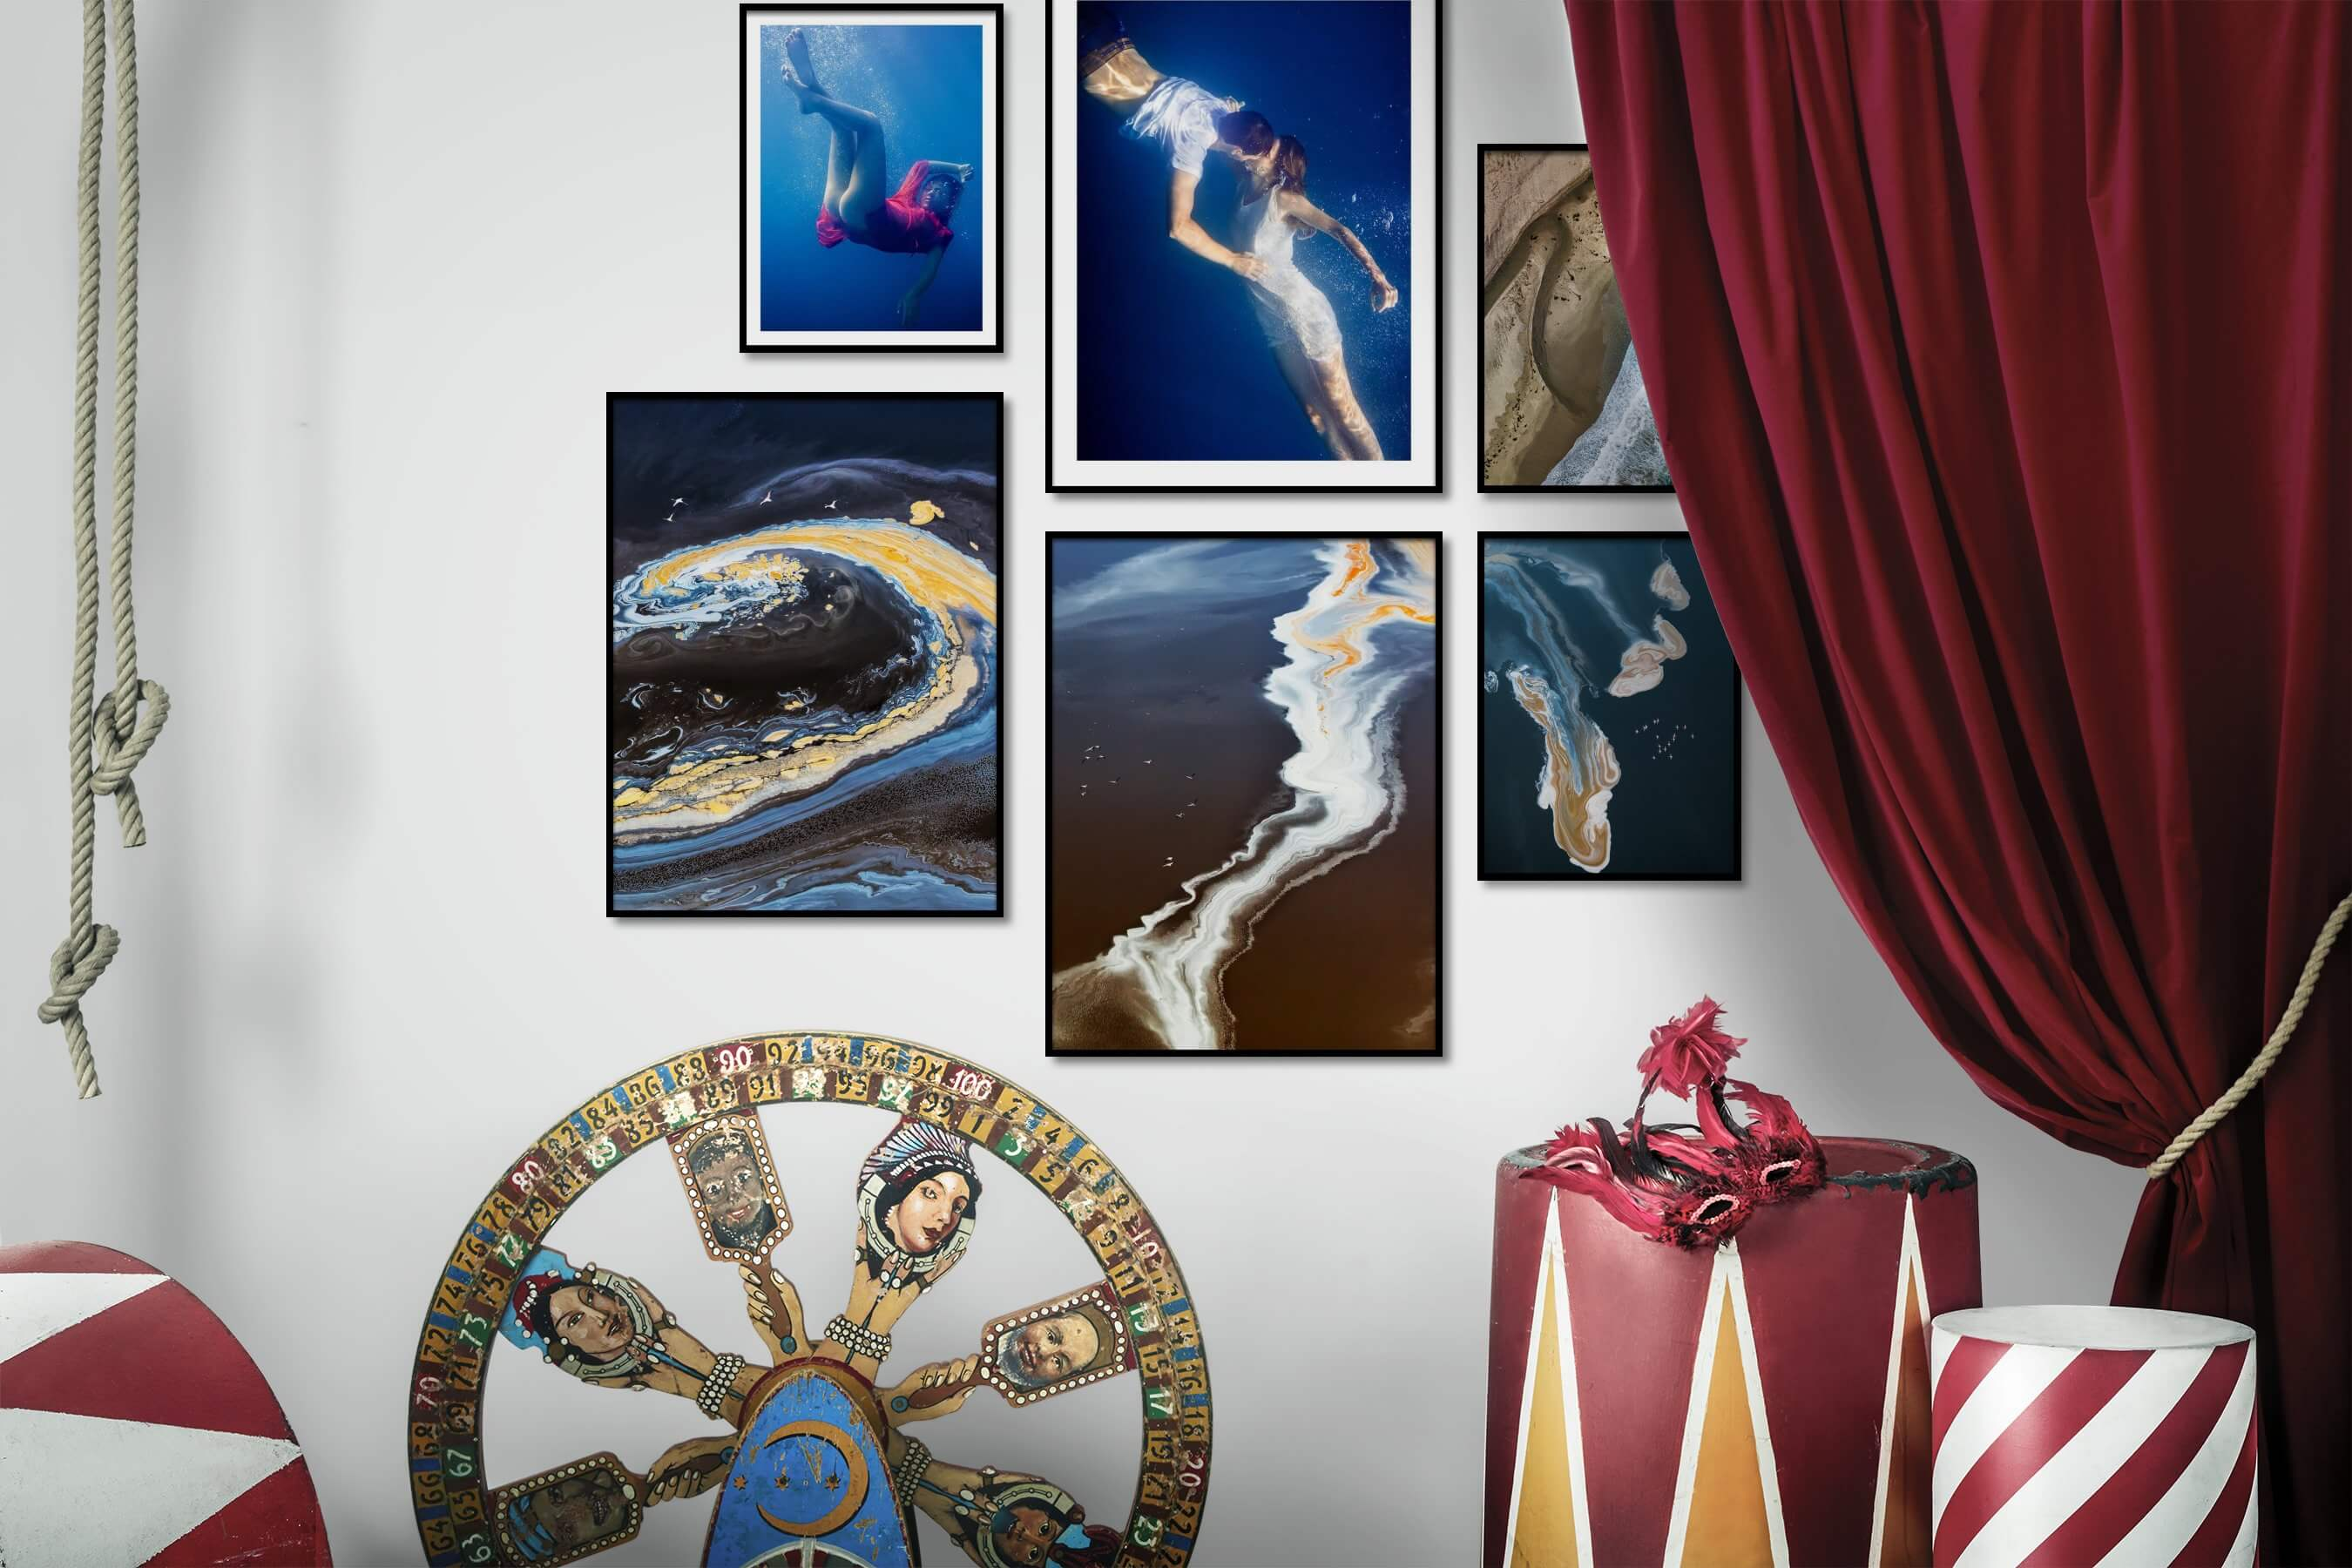 Gallery wall idea with six framed pictures arranged on a wall depicting Fashion & Beauty, Beach & Water, For the Moderate, and Nature